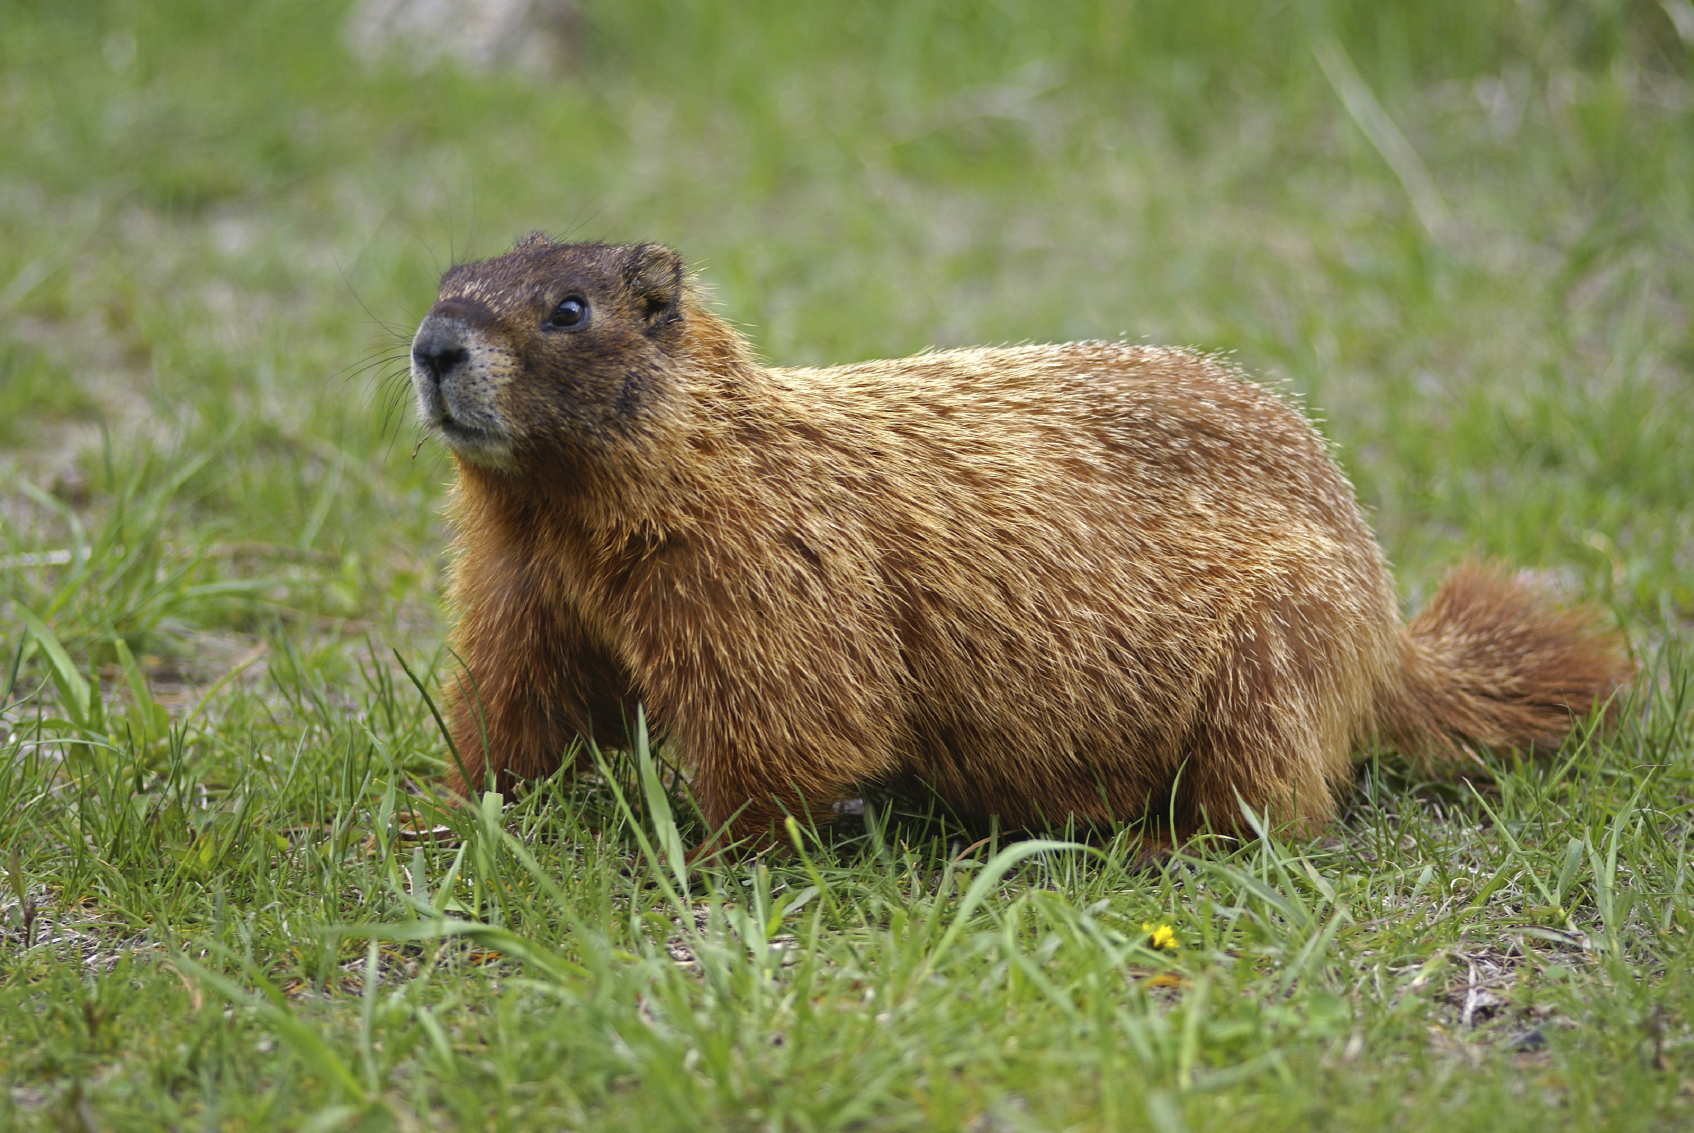 Video Feed Groundhog Day 2015 Live from Gobblers Knob